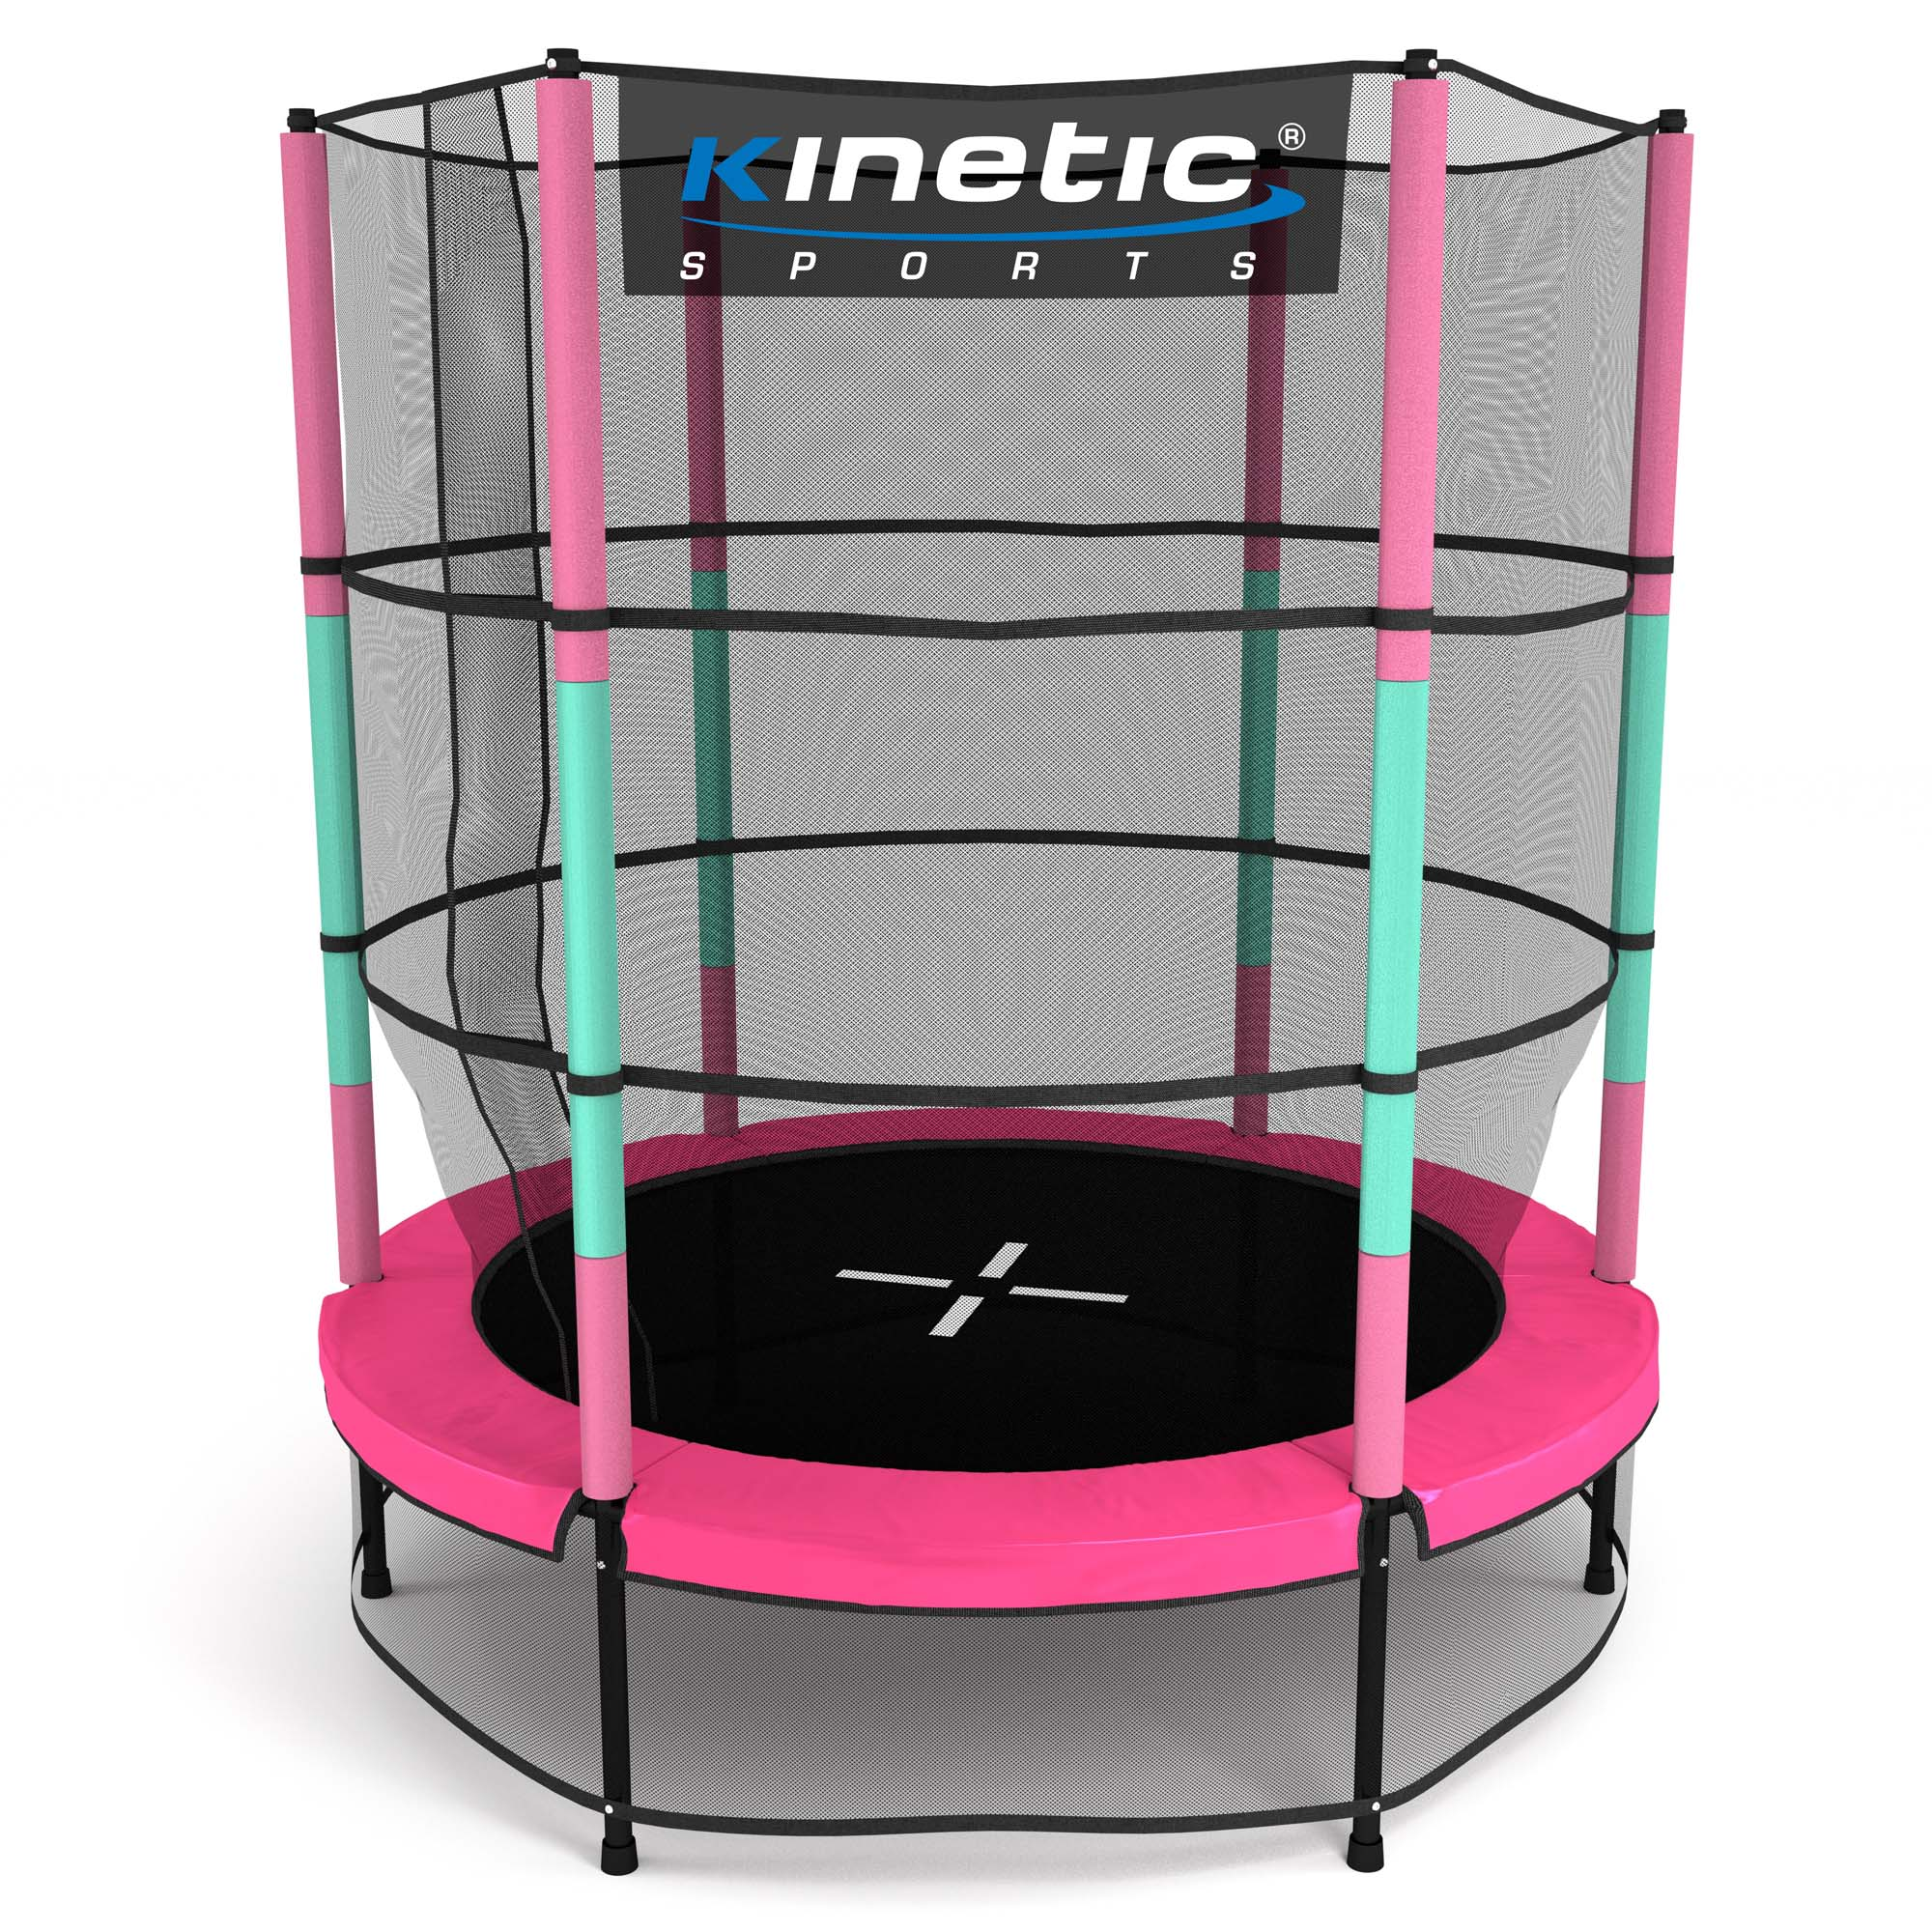 kinder trampolin indoor outdoor garten 140cm mit. Black Bedroom Furniture Sets. Home Design Ideas